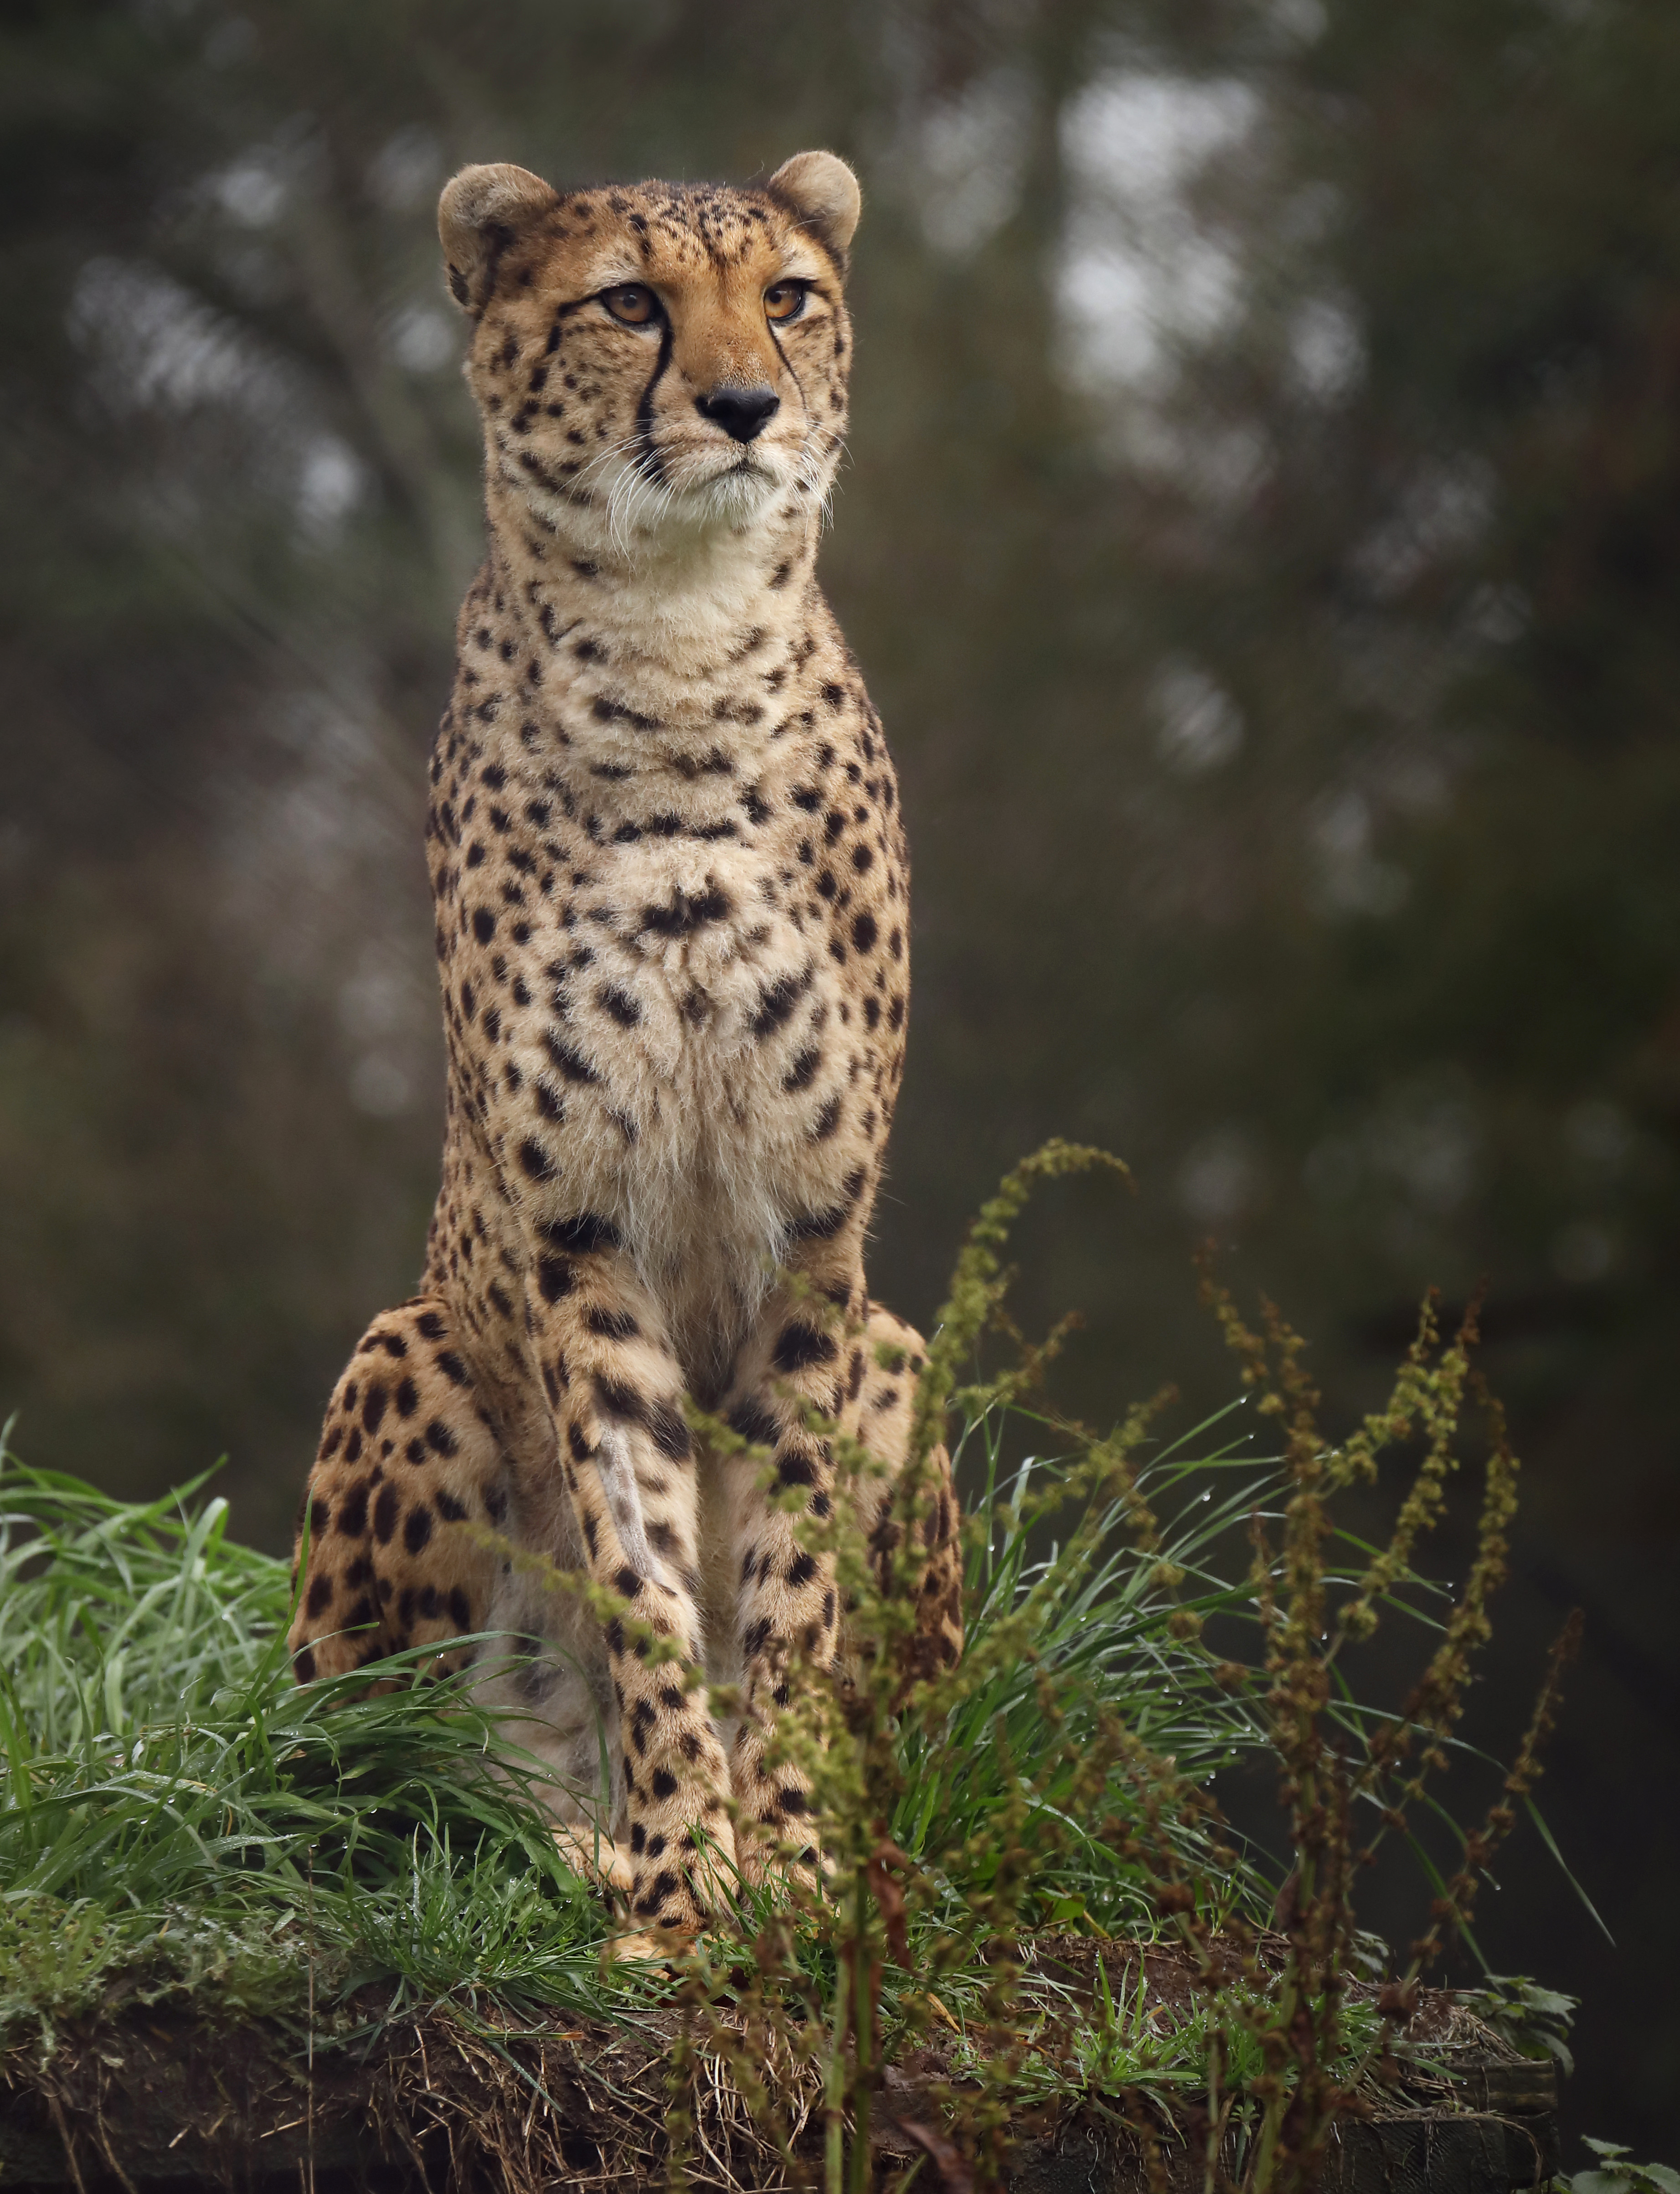 116270 download wallpaper Animals, Cheetah, Big Cat, Spotted, Spotty, Grass screensavers and pictures for free